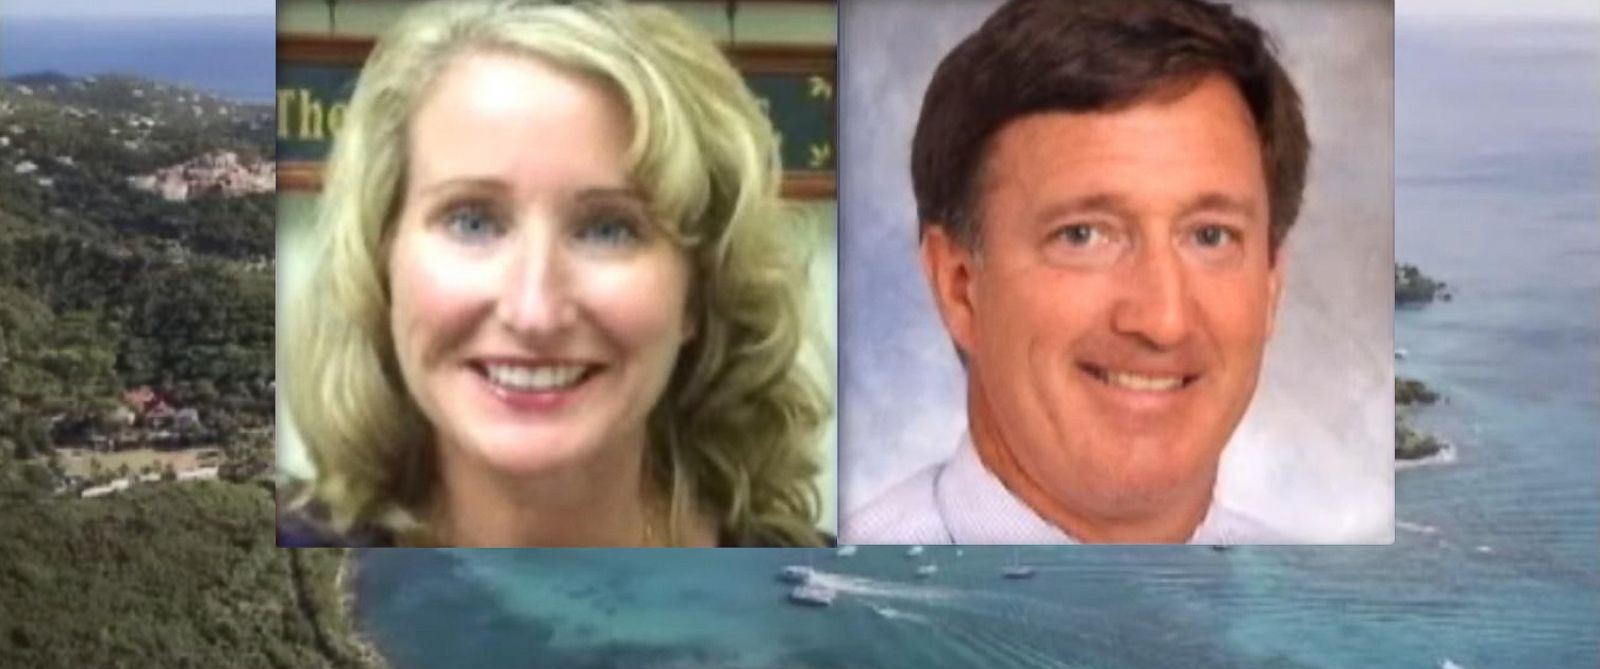 PHOTO: A Delaware family of four became ill after staying at a resort in the U.S. Virgin Islands where they were allegedly exposed to pesticides.